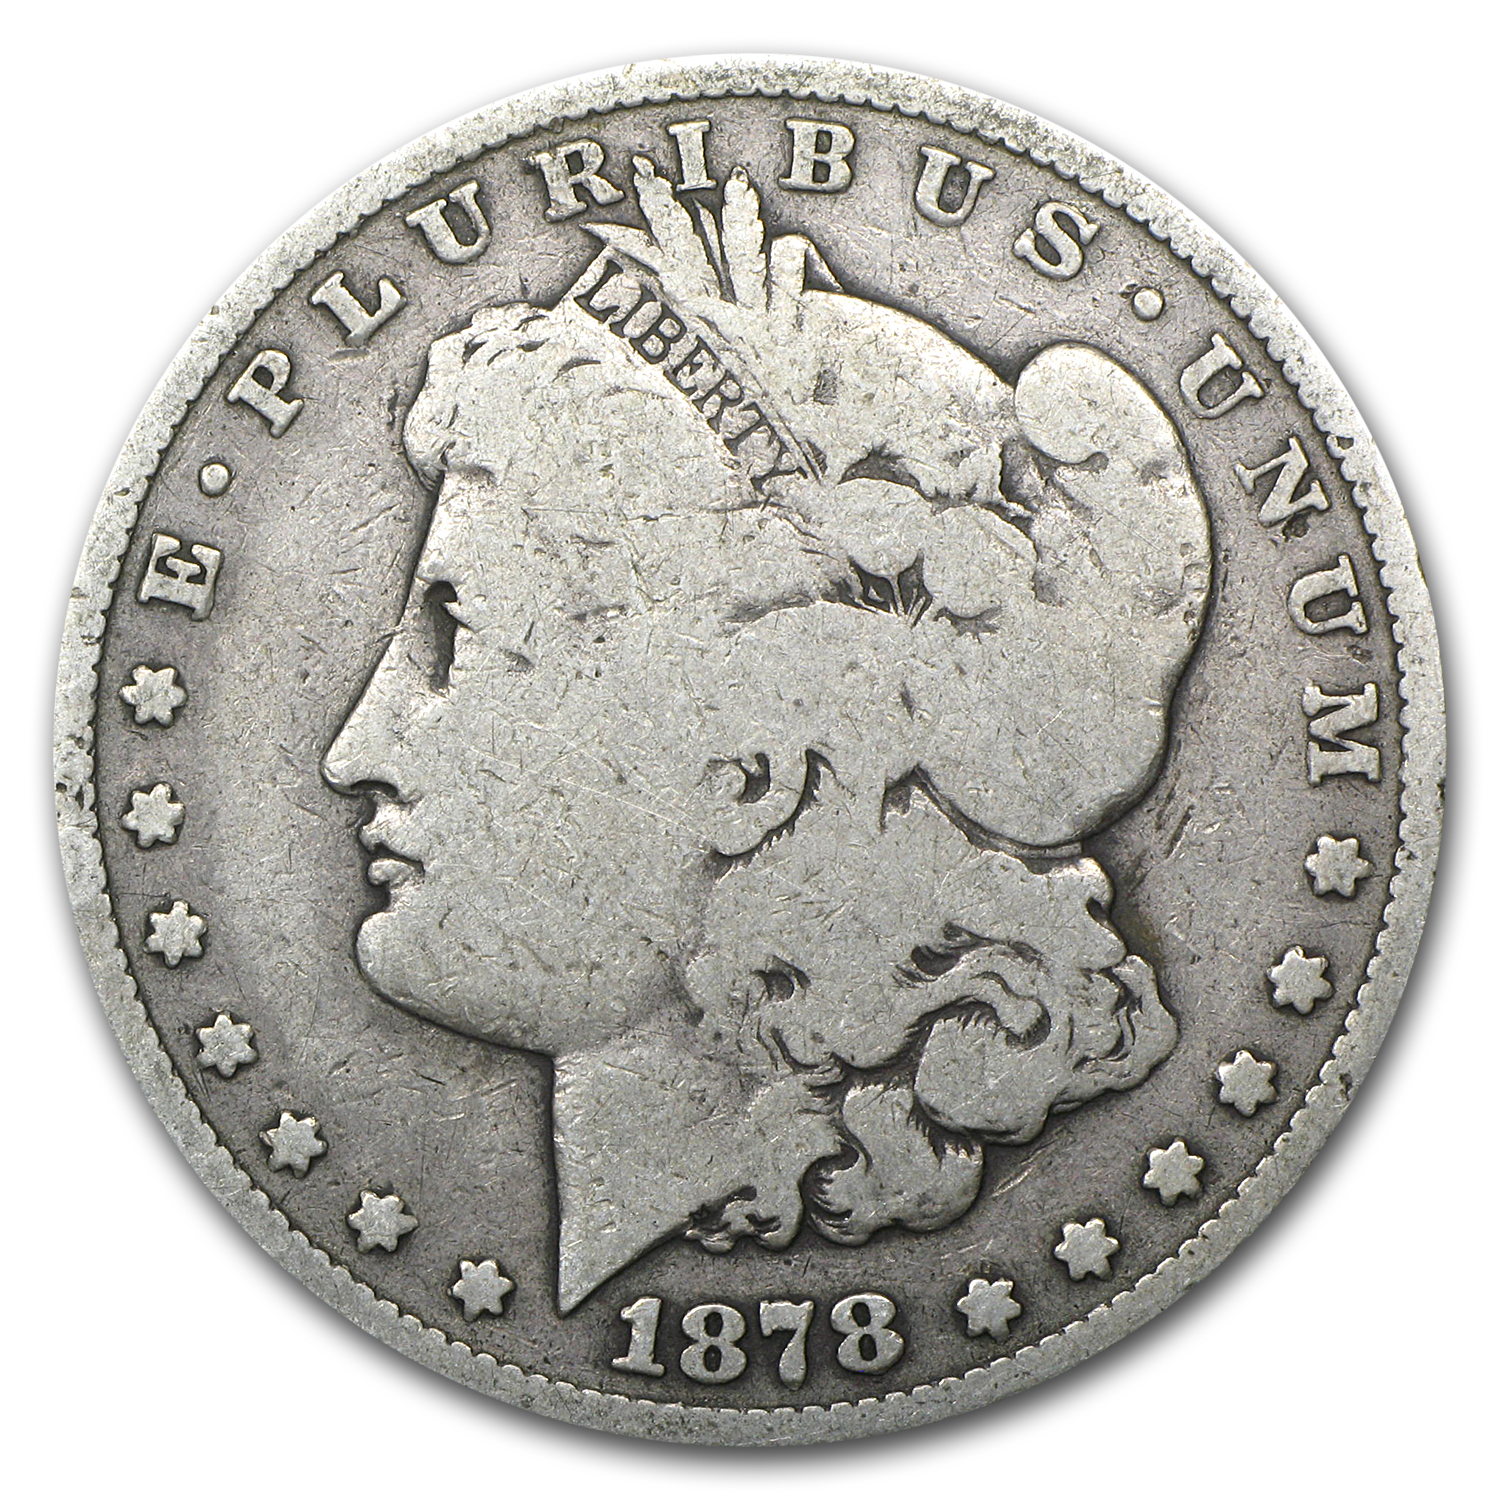 1878-S Morgan Dollar Good (VAM-57, Long Nock Rev, Top-100)